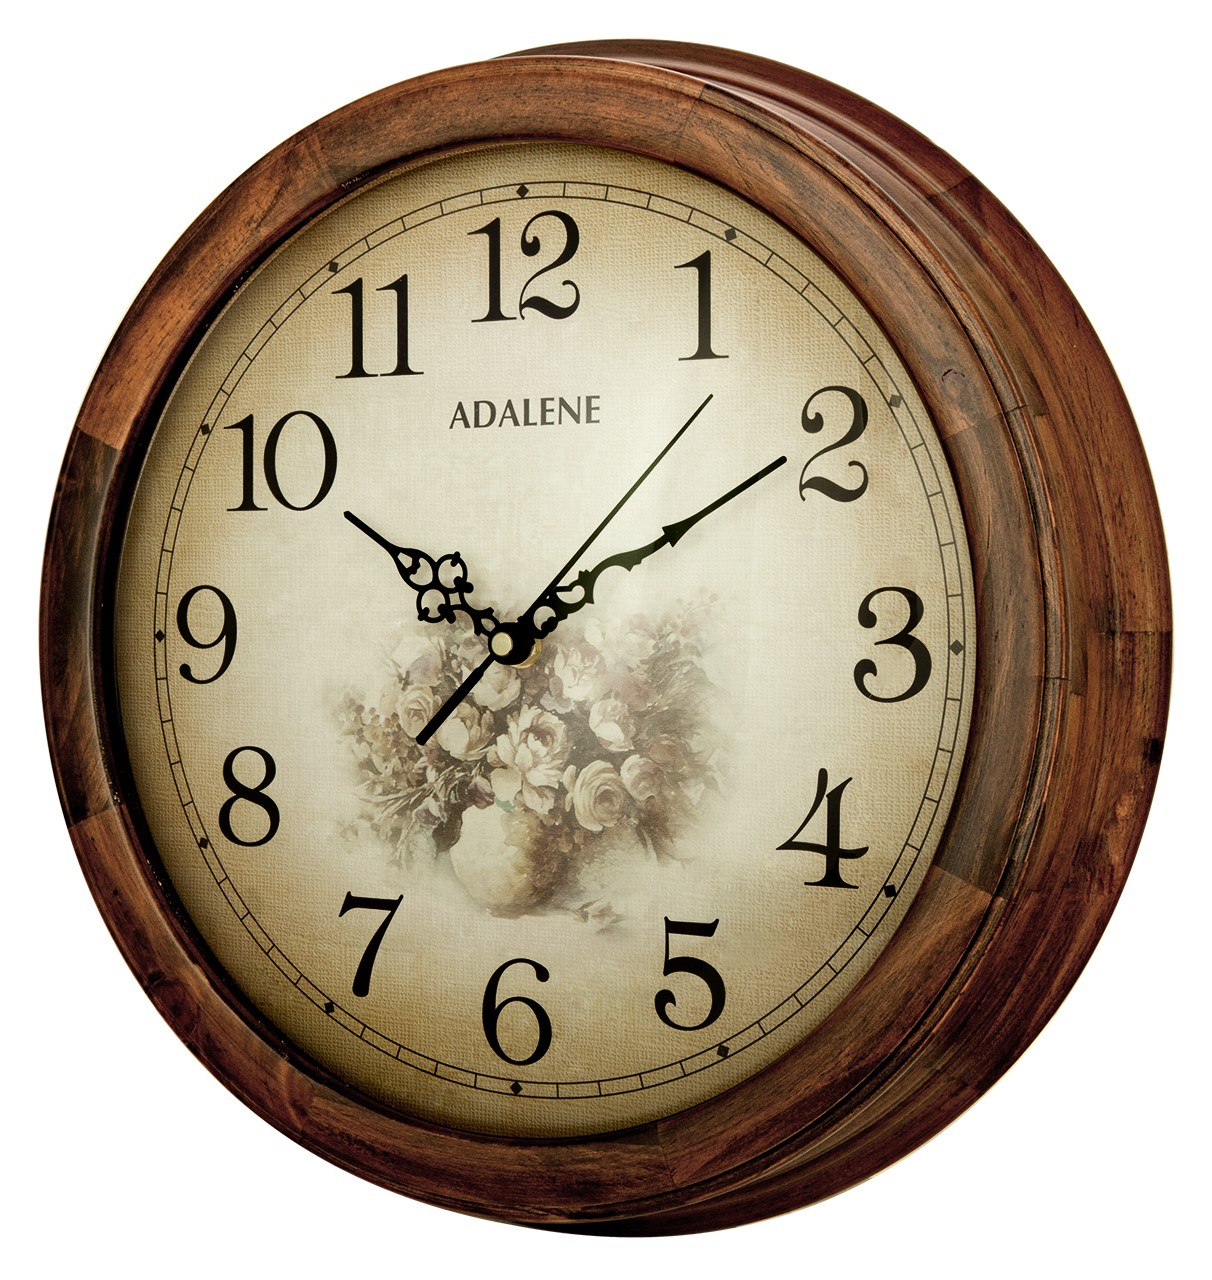 Adalene 14 Inch Wall Clock Large Decorative Living Room Clock U2013 Quiet  Battery Operated Quartz Analog Silent Wood Wall Clock U2013 Round Sepia Flower  Dial With ... Part 61